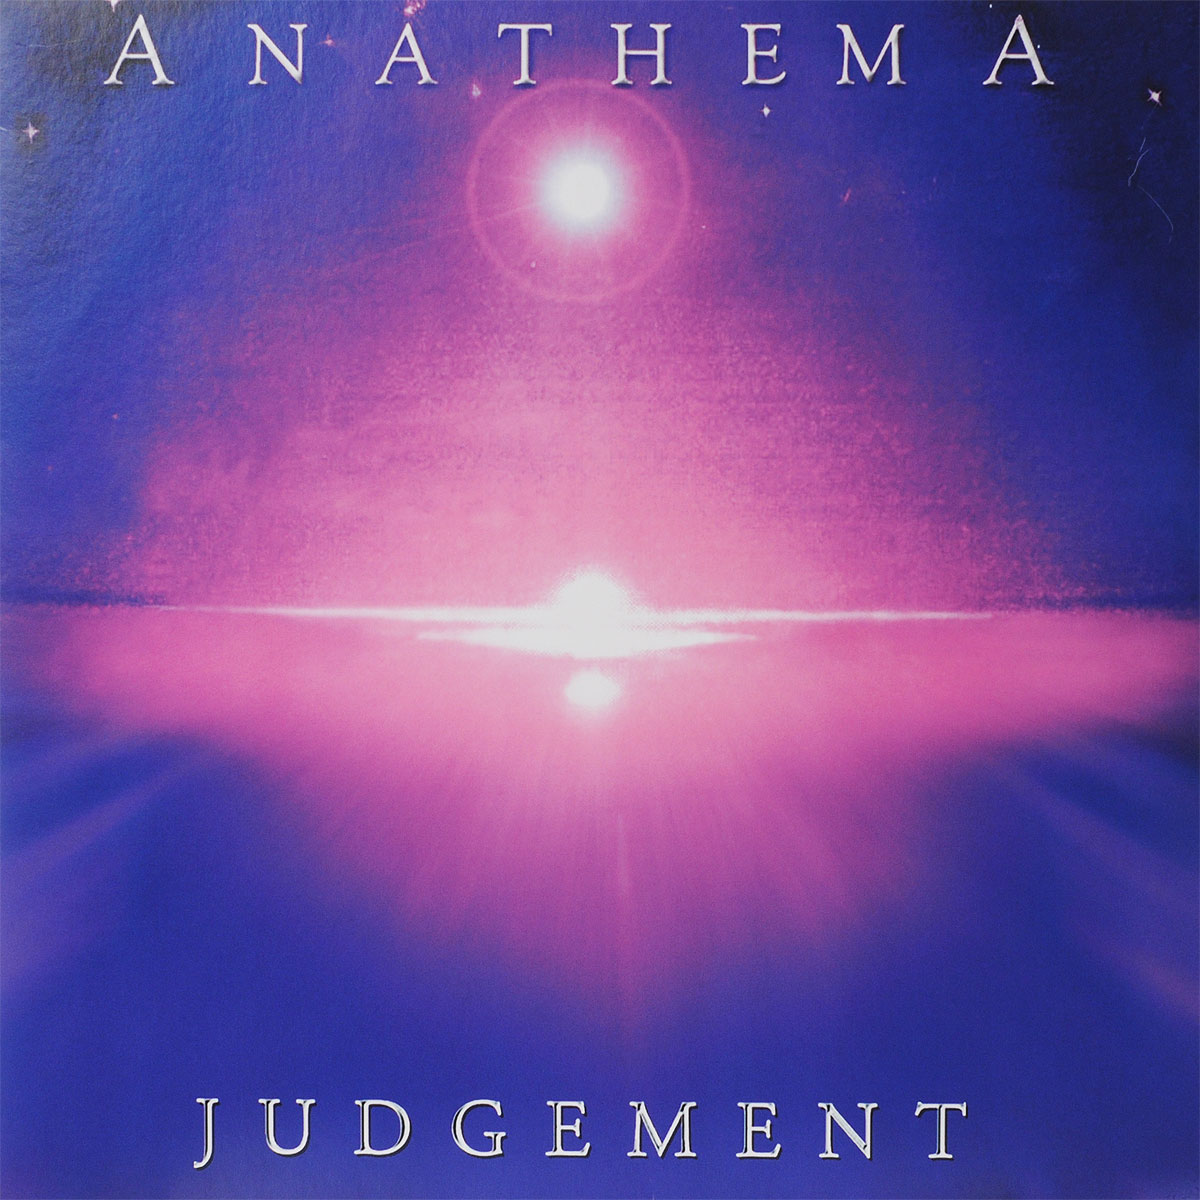 Anathema Anathema. Judgement (LP) anathema anathema judgement lp 180 gr cd